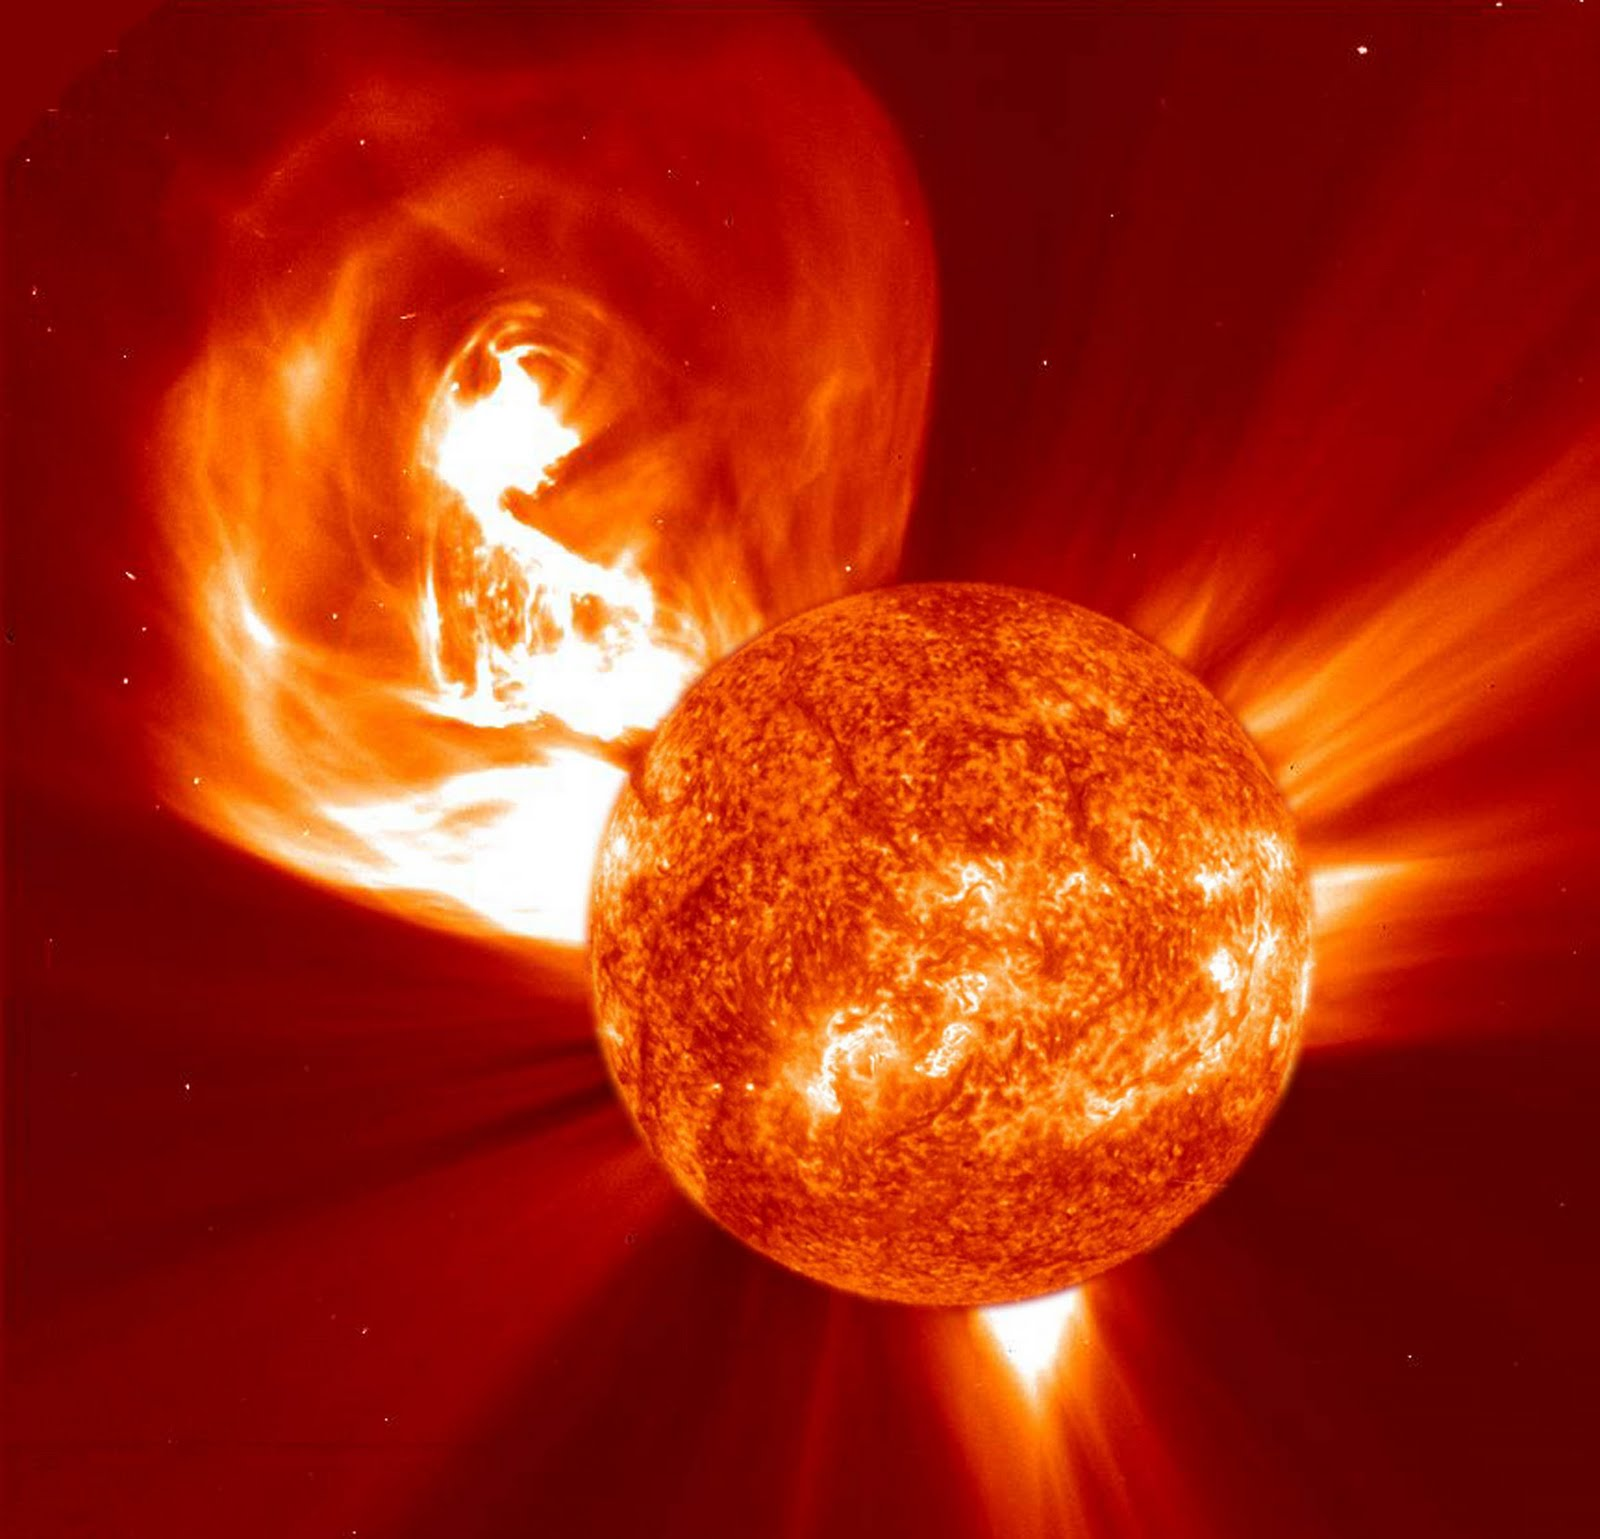 Jesus Saved Cheryl Meril From Hell: Monster Solar Flares ...